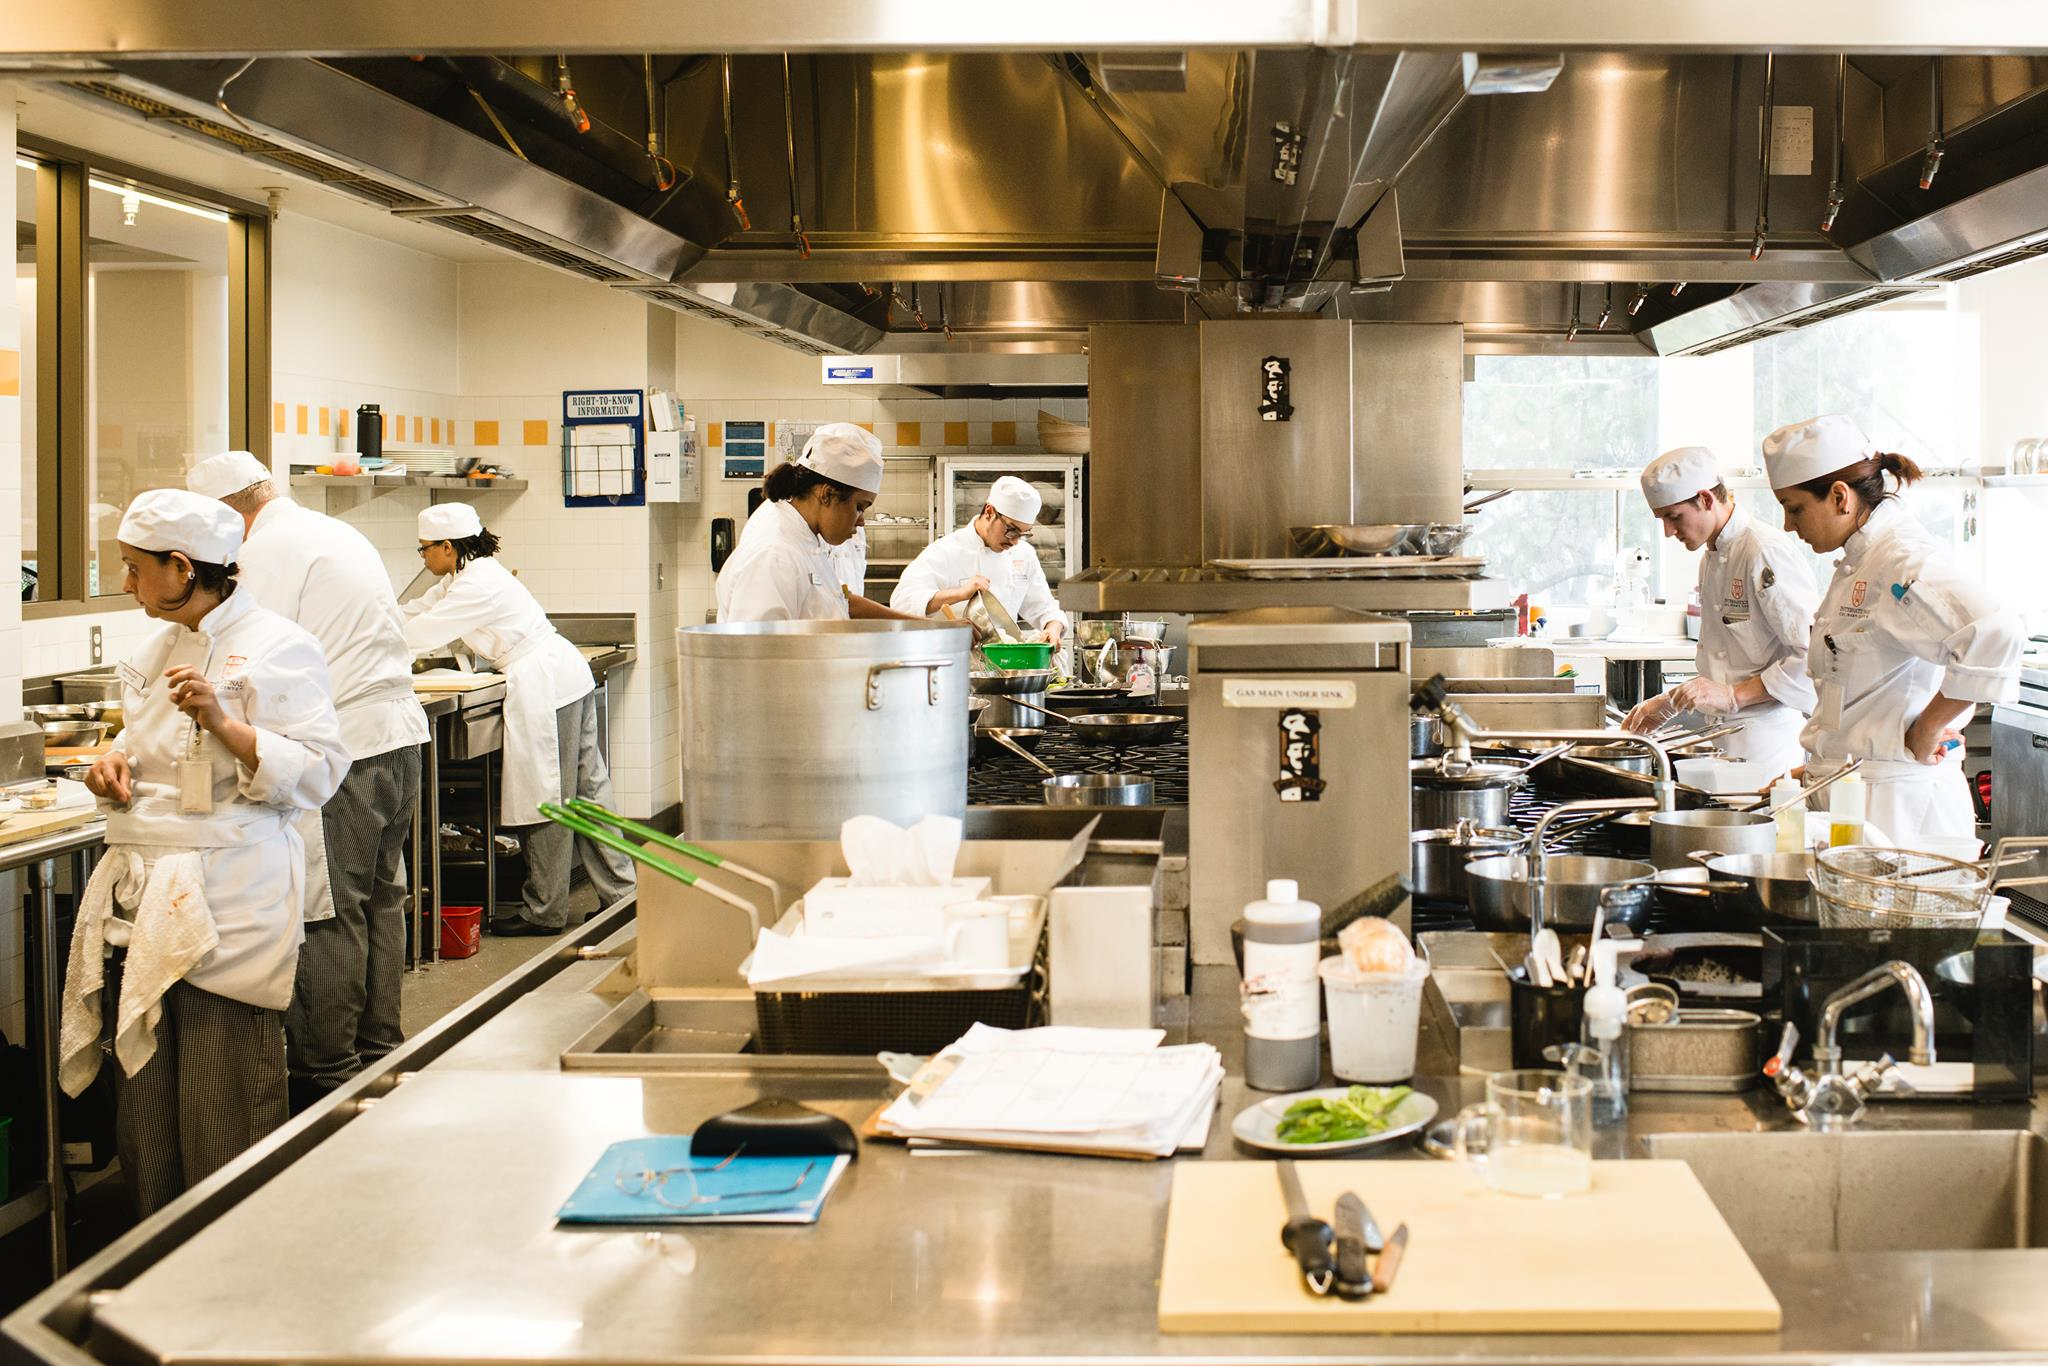 One of the Bay Area's Few Culinary Schools to Close